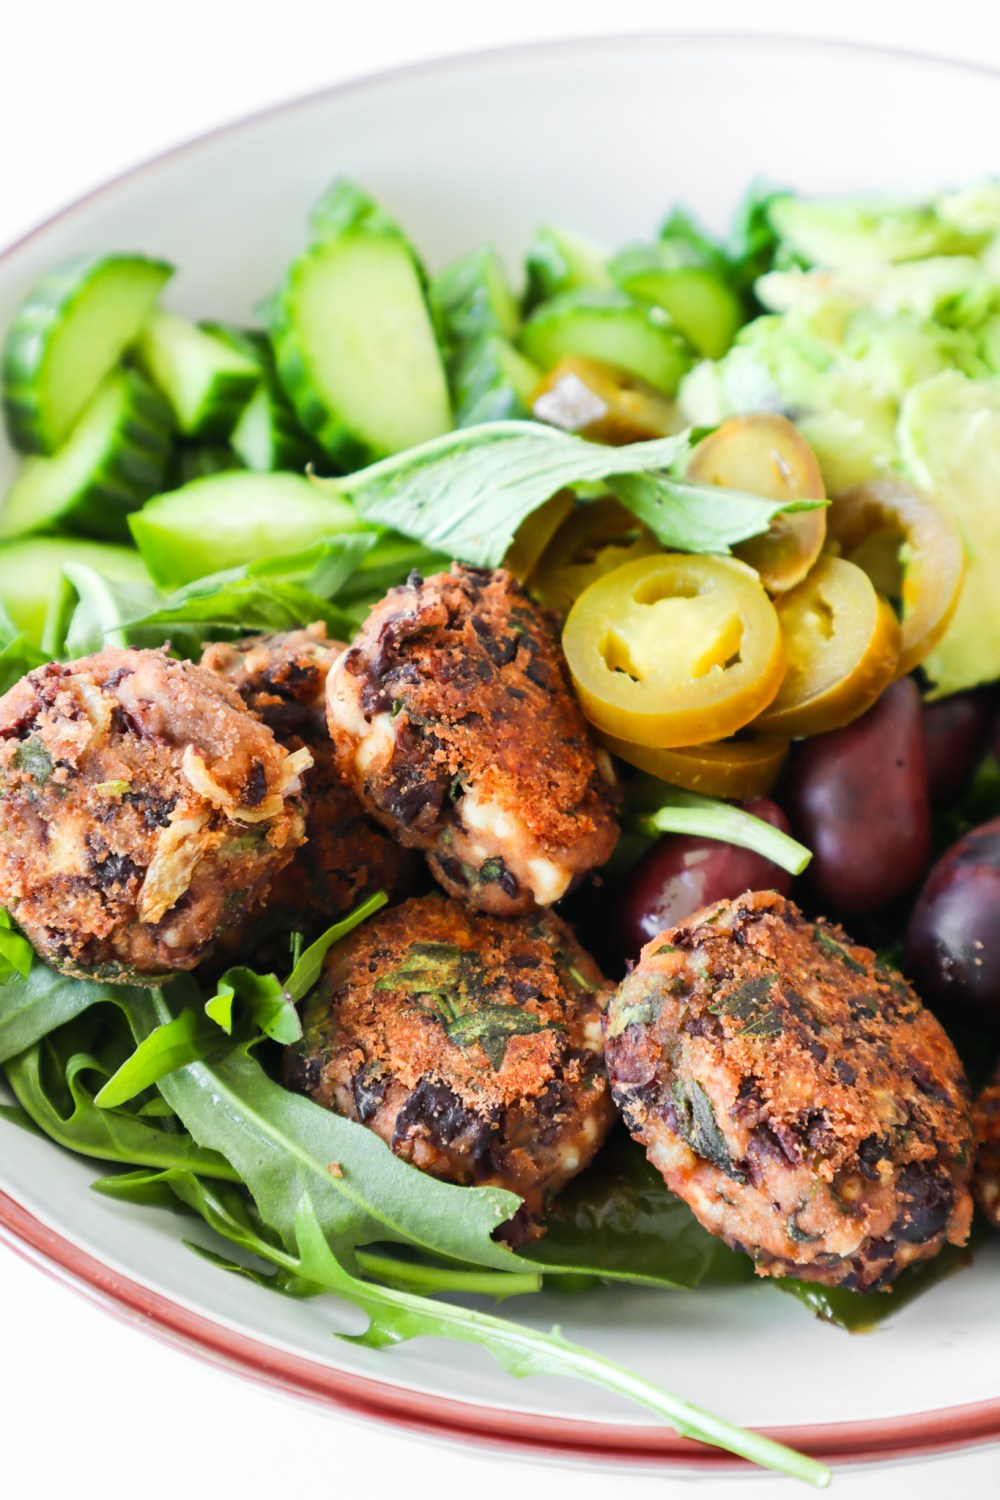 Try this delicious black bean meatballs recipe! An easy meatless dinner recipe that you can make ahead and store in the fridge or freeze. Serve with salad, avocado or yogurt-based sauces for a full meal.